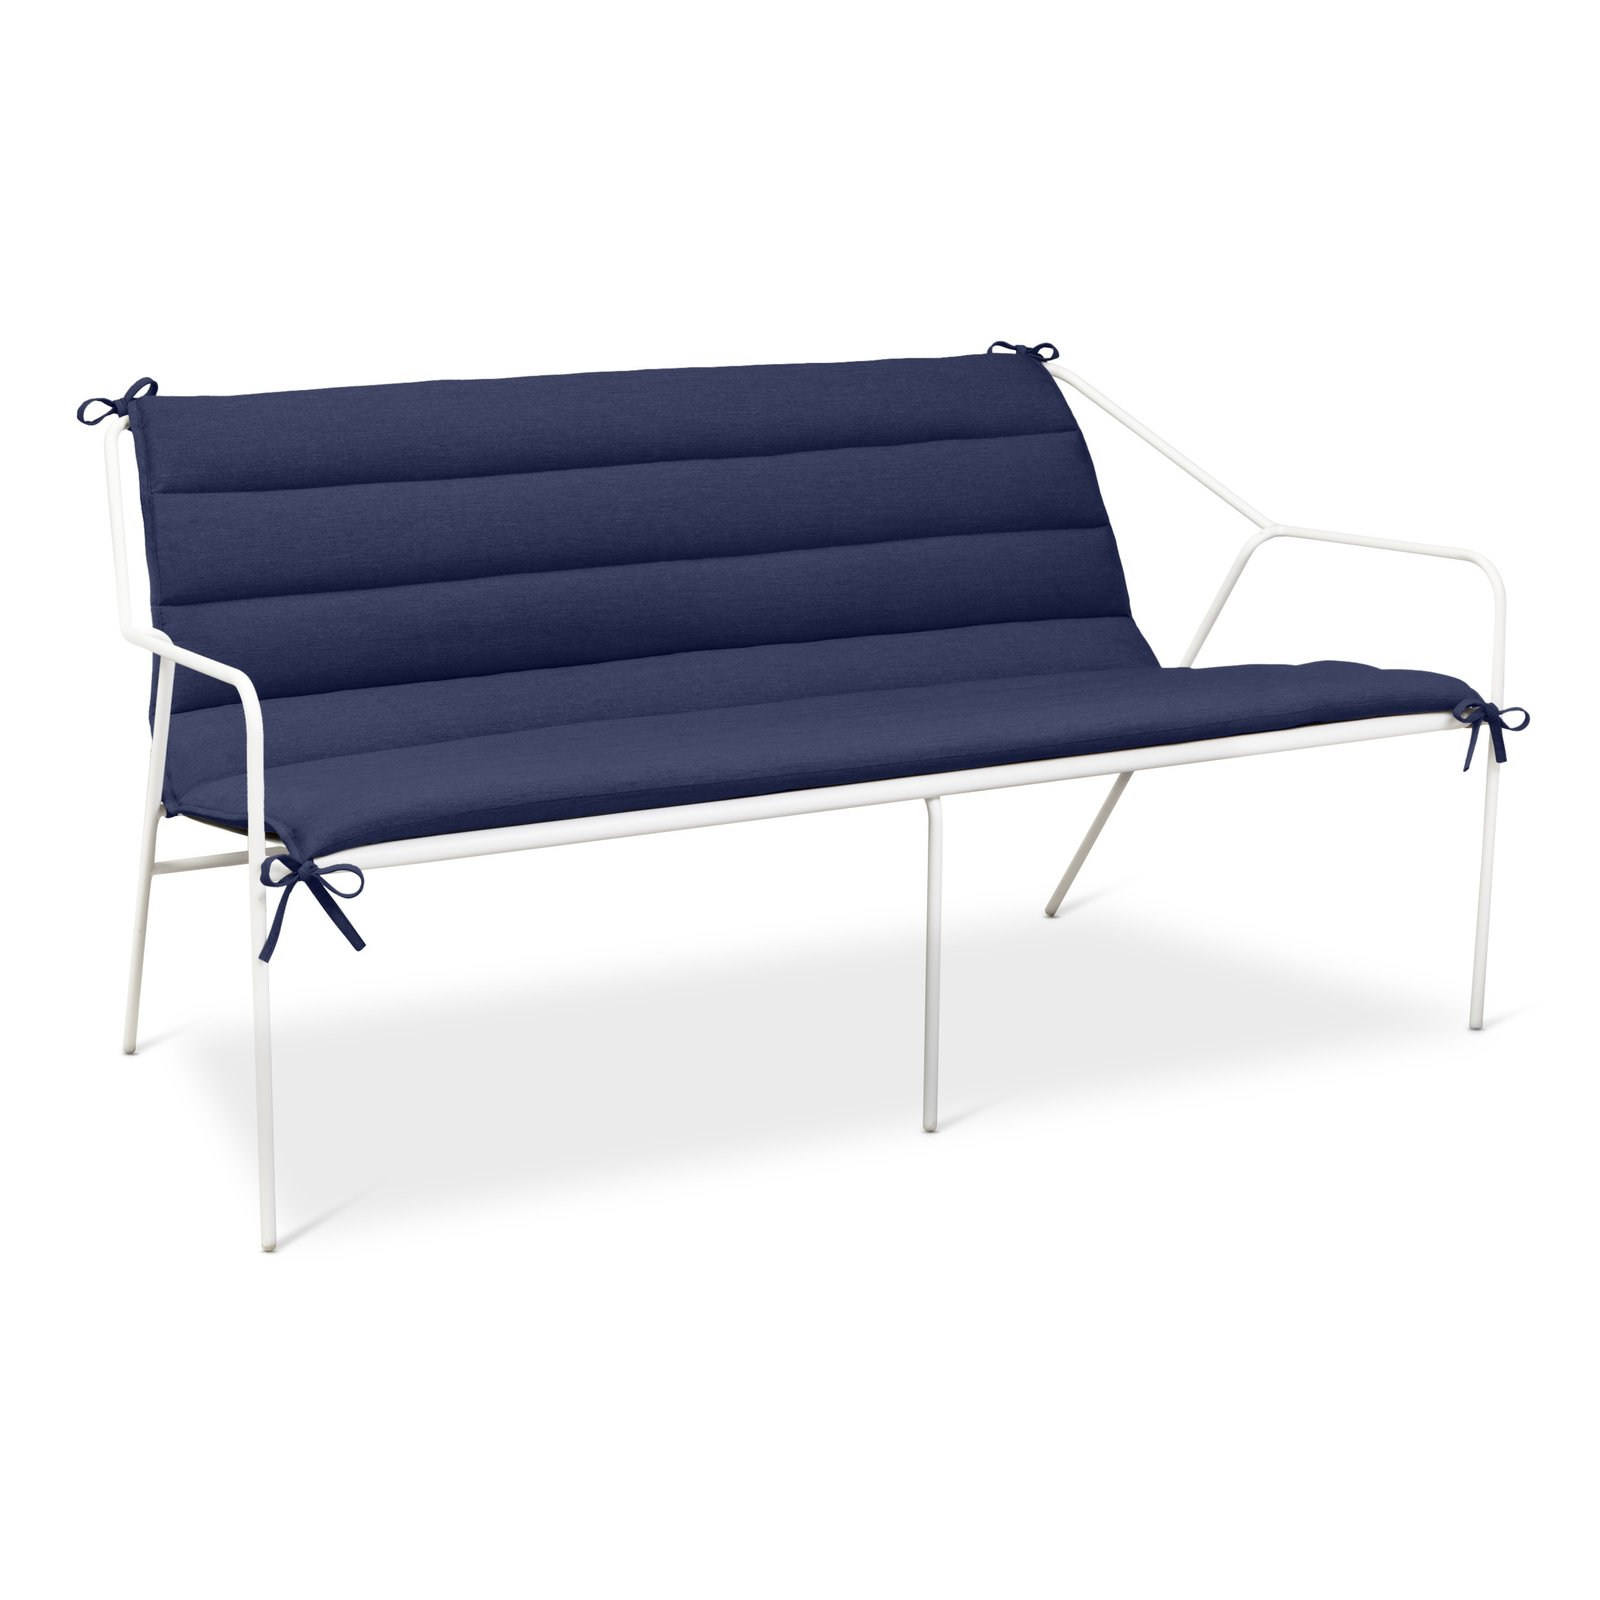 Outdoor Sofa, $399.99, available in gray or white; Cushion, $109.99, available in gray or navy; designed by Chris Deam and Nick Dine for Modern by Dwell Magazine for Target   Photo 4 of 17 in Modern by Dwell Magazine: Outdoor Collection